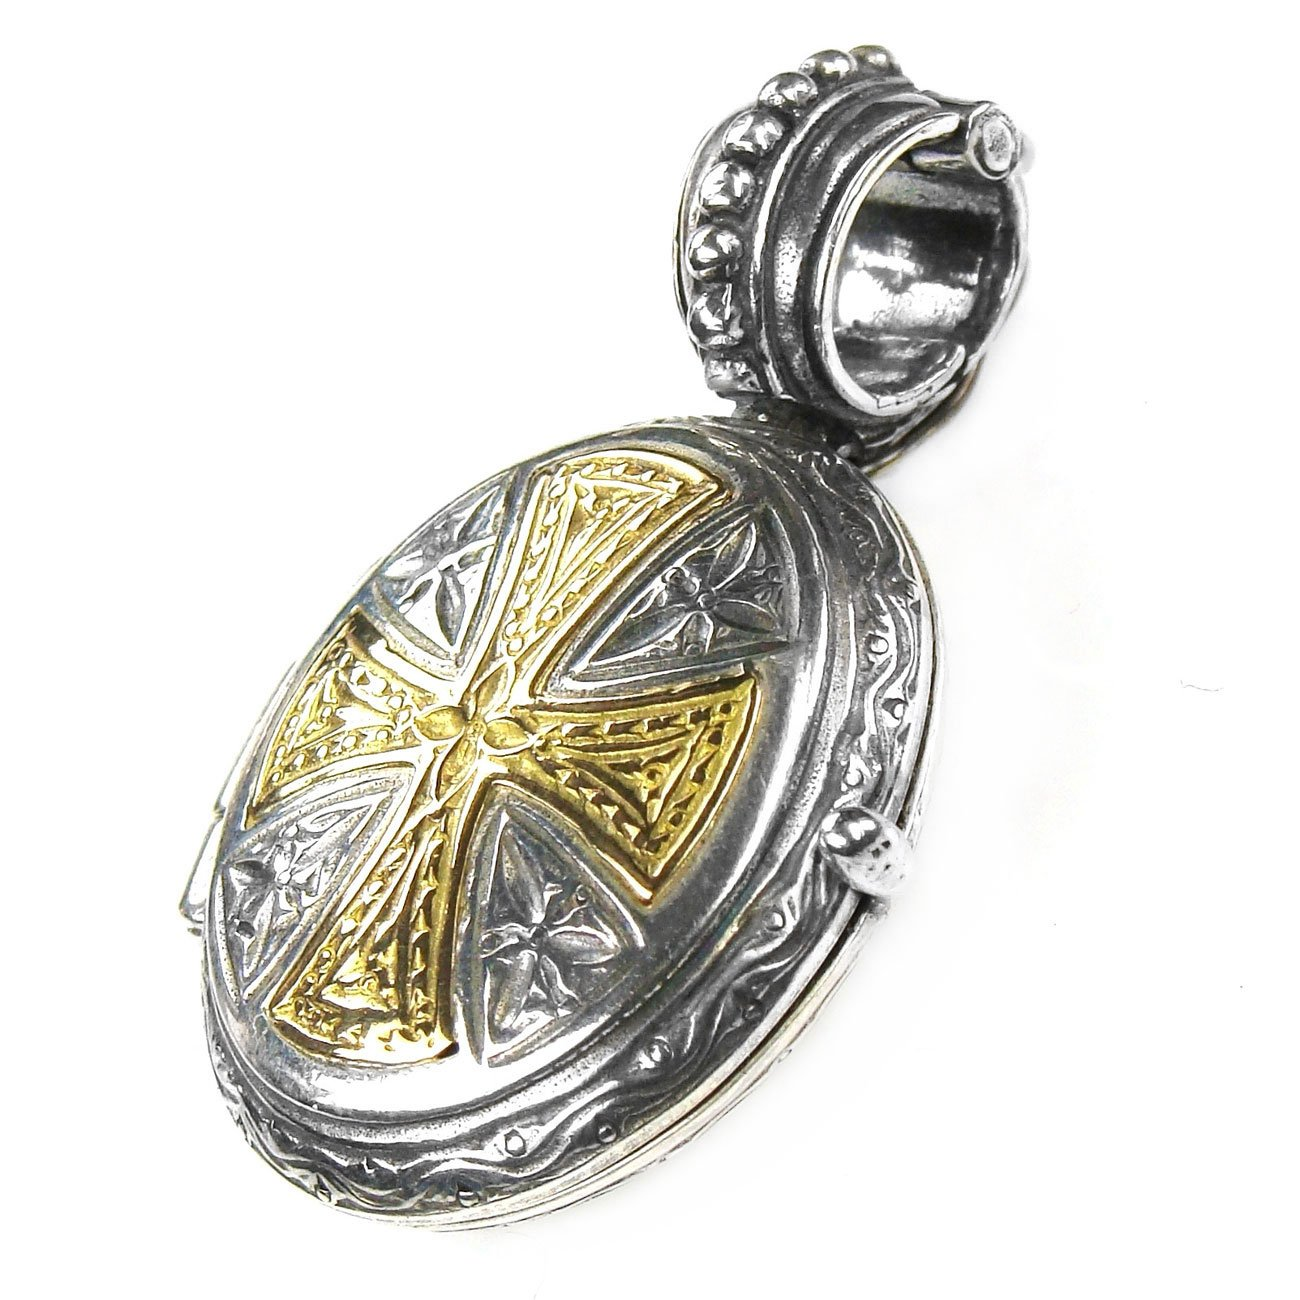 Gerochristo 3367 - Solid 18K Gold & Silver Engraved Locket Pendant with Cross